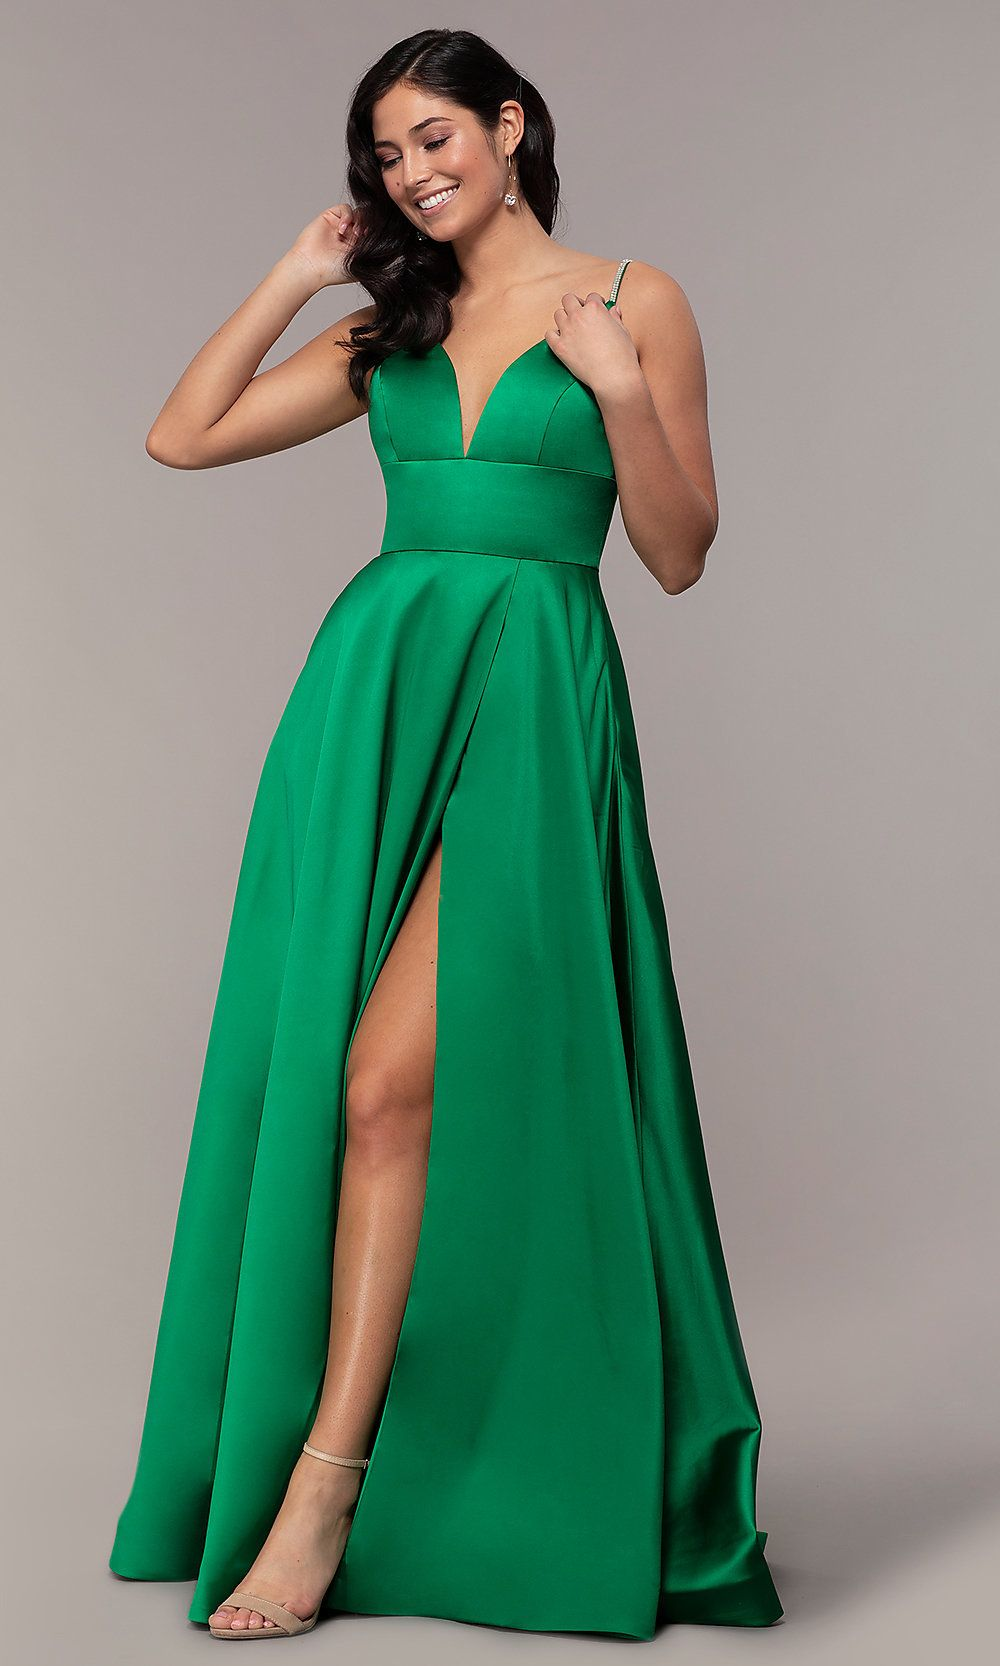 Beaded-Strap Long JVN by Jovani Formal Prom Gown   Prom ...